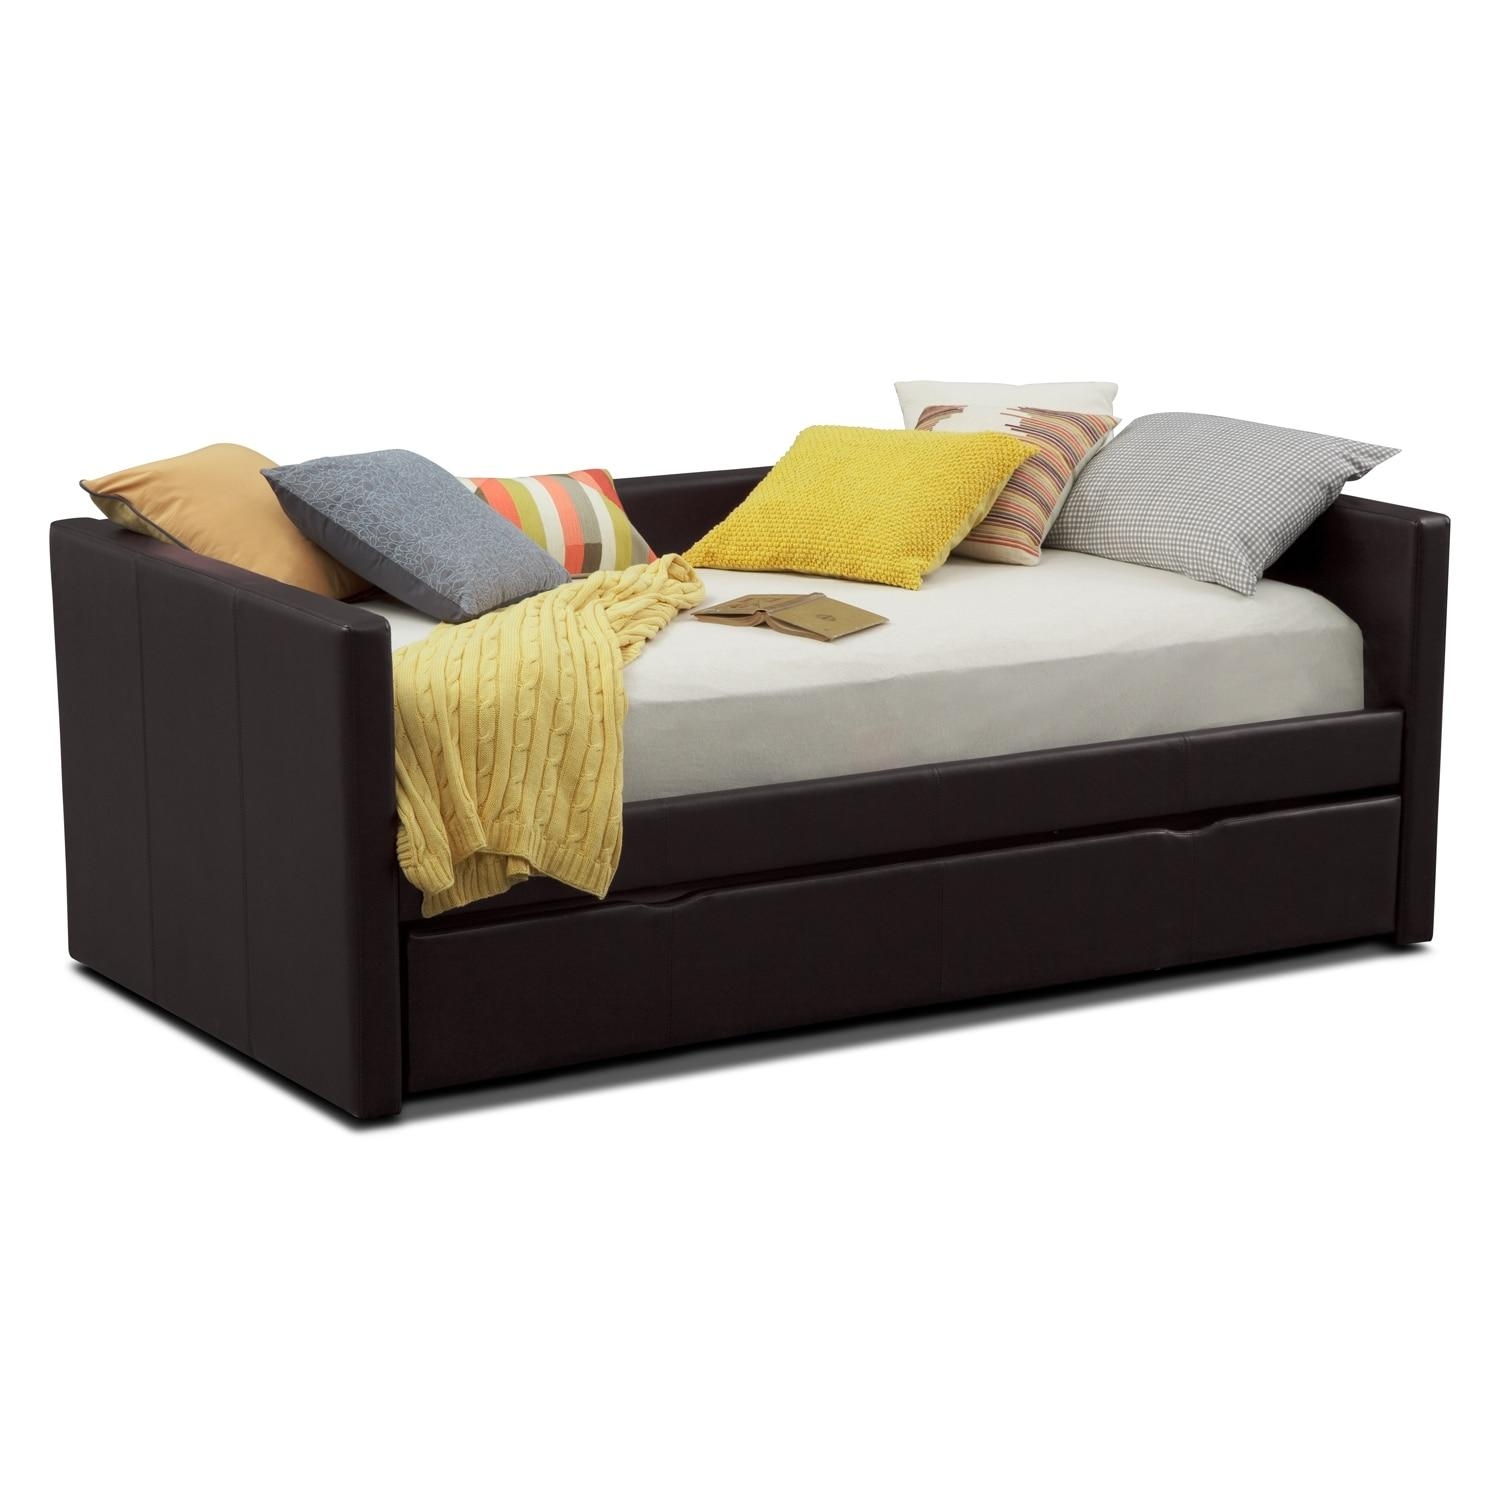 Daybeds & Trundle Beds | Bedroom Furniture | Value City Furniture Intended For Sofas With Trundle (Image 3 of 20)